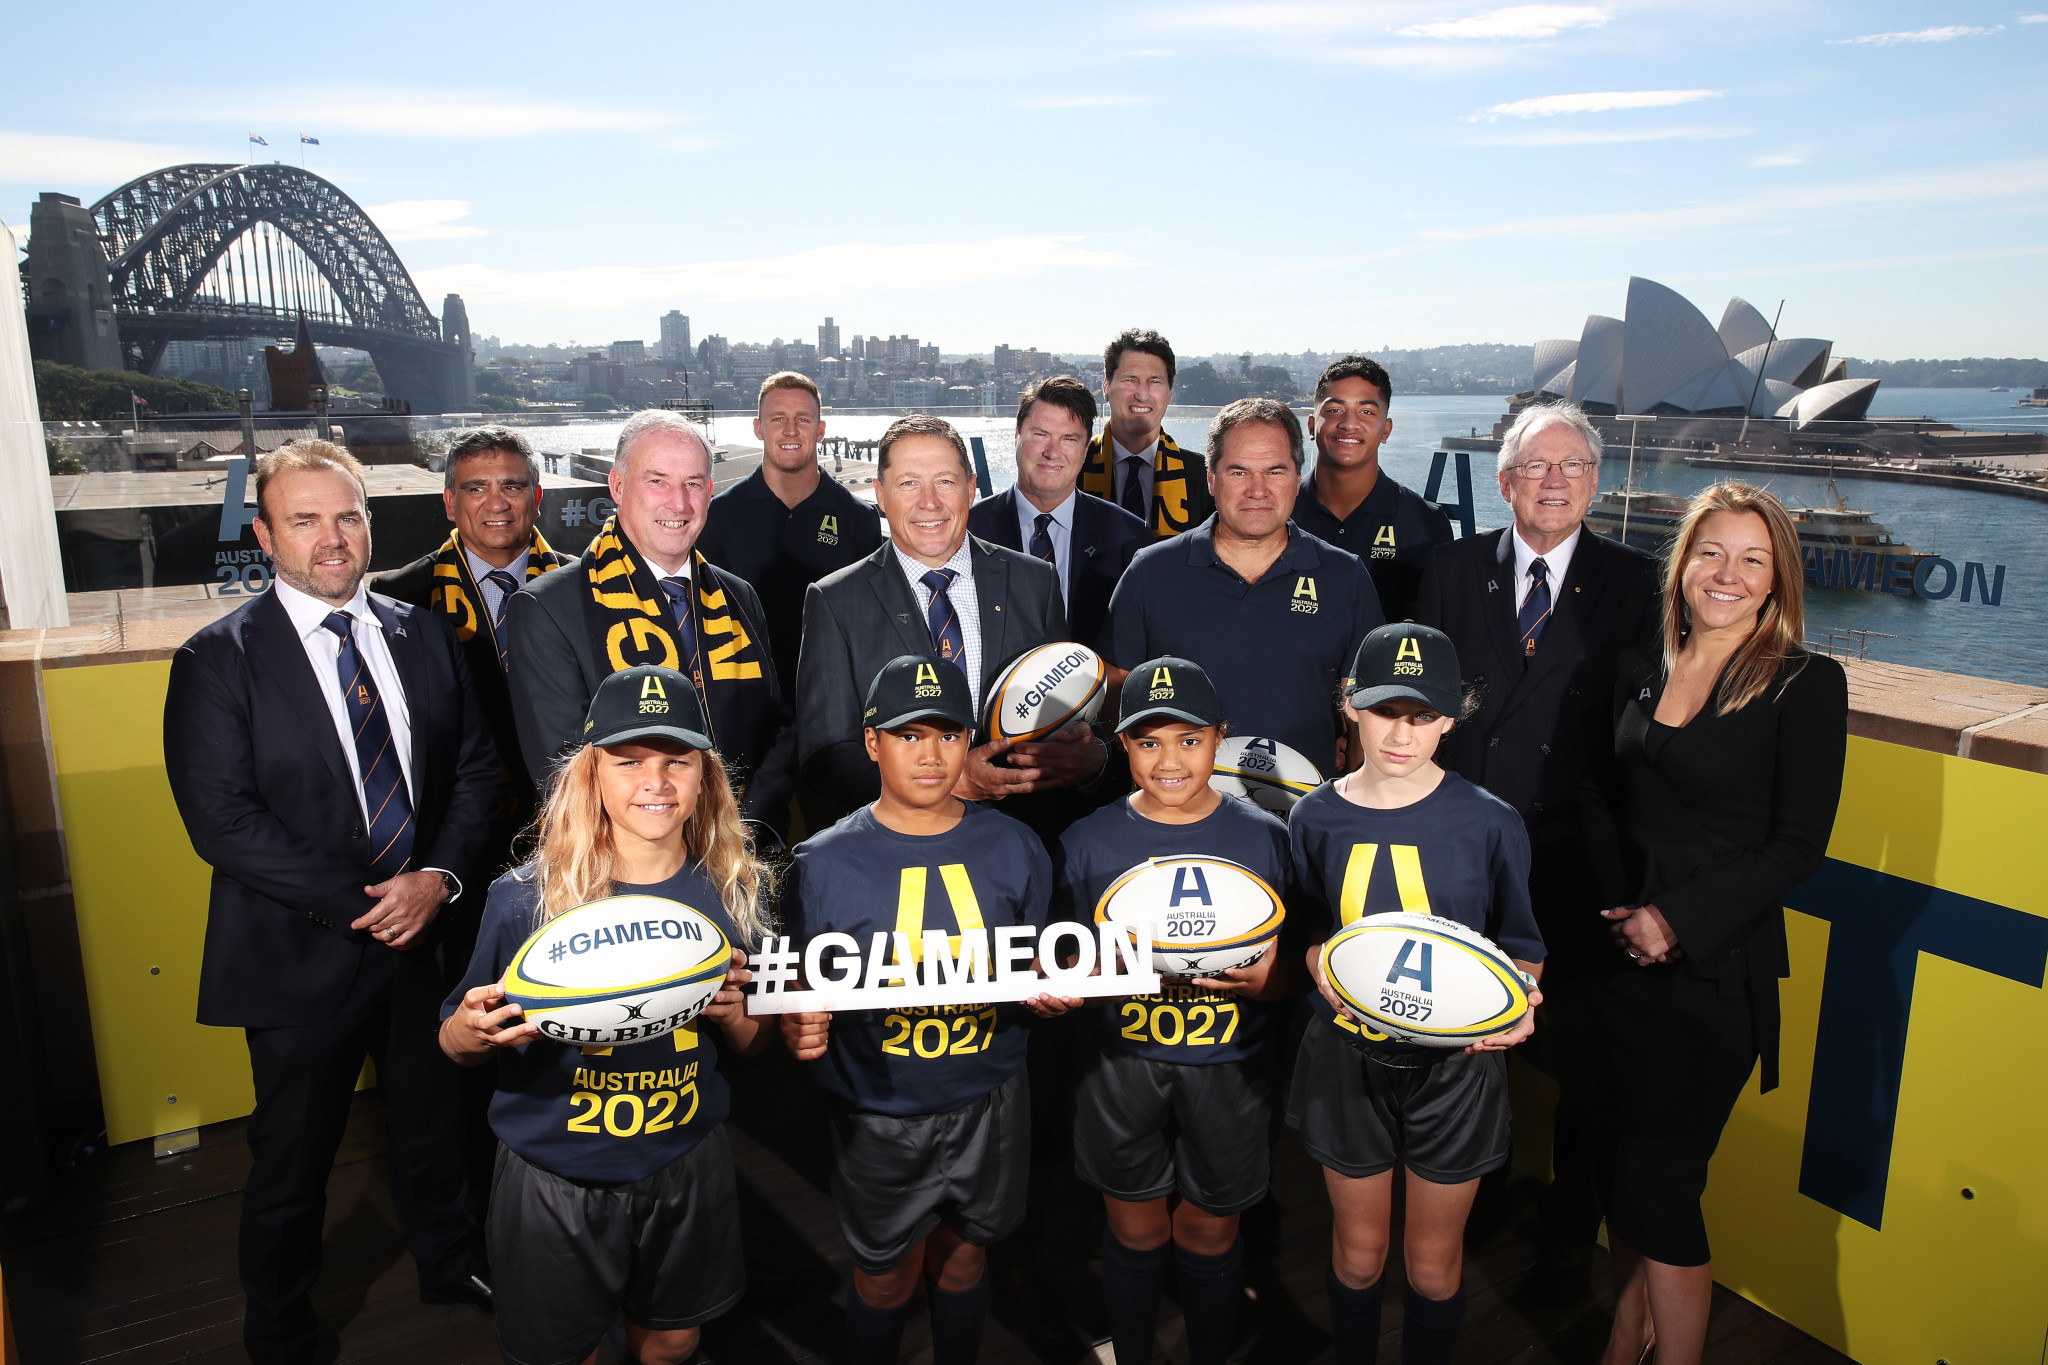 Australia officially launches bid to stage 2027 Rugby World Cup